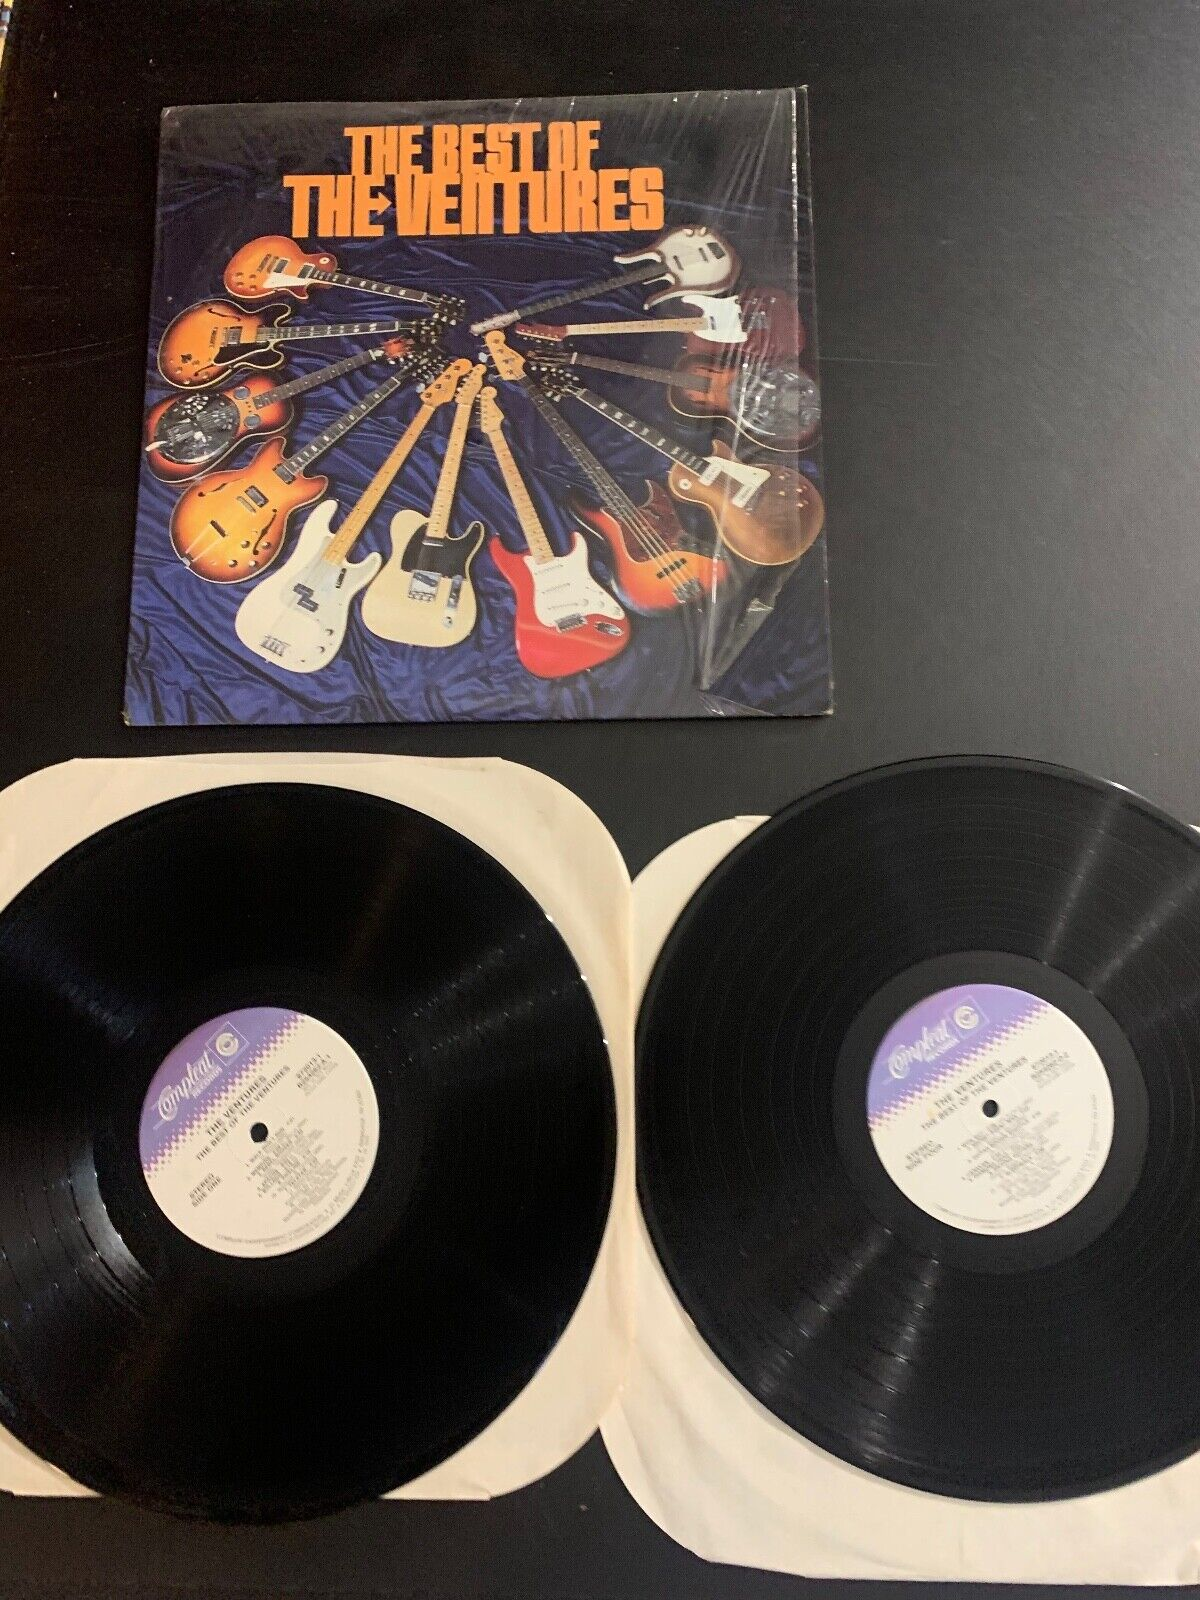 LP RECORD - THE VENTURES - THE BEST OF - 2 LPS - COMPLEAT RECORDS - $9.99